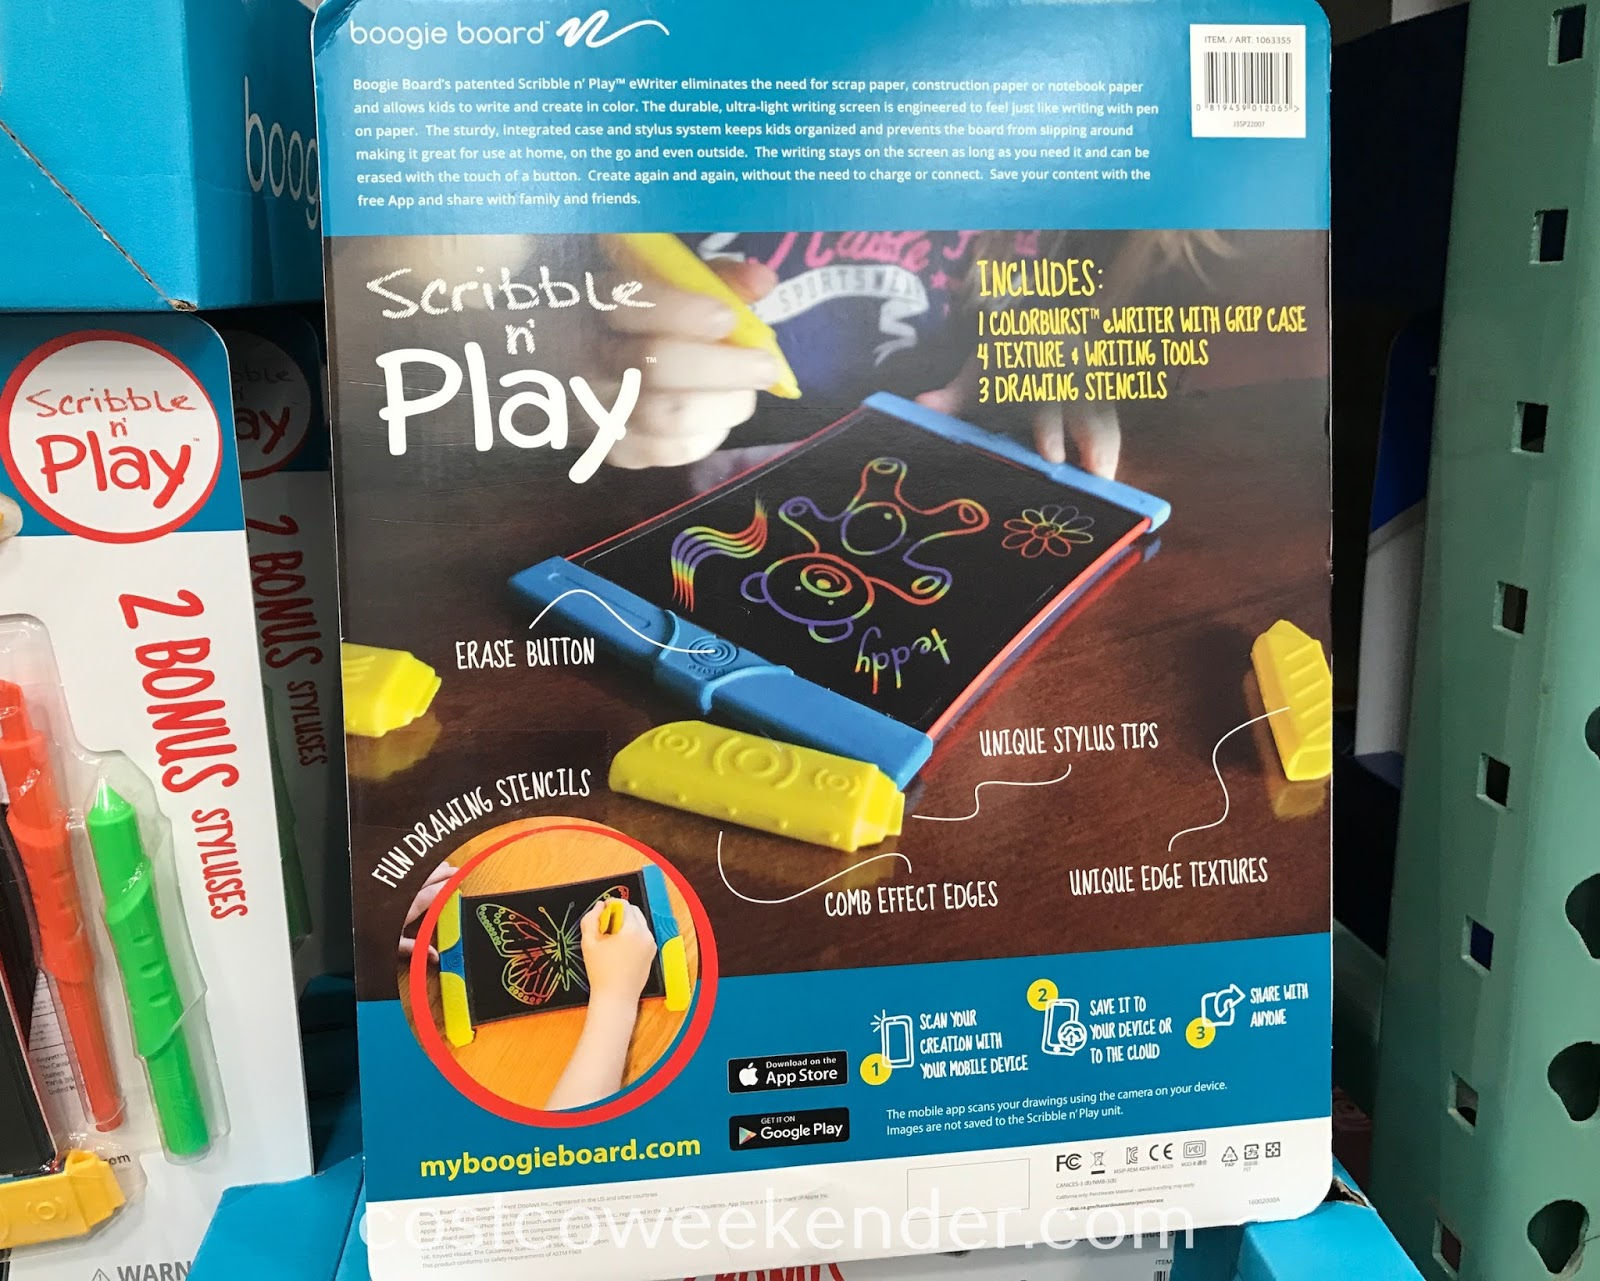 Costco 1063355 - Boogie Board Scribble n' Play eWriter gives your kids something fun and educational